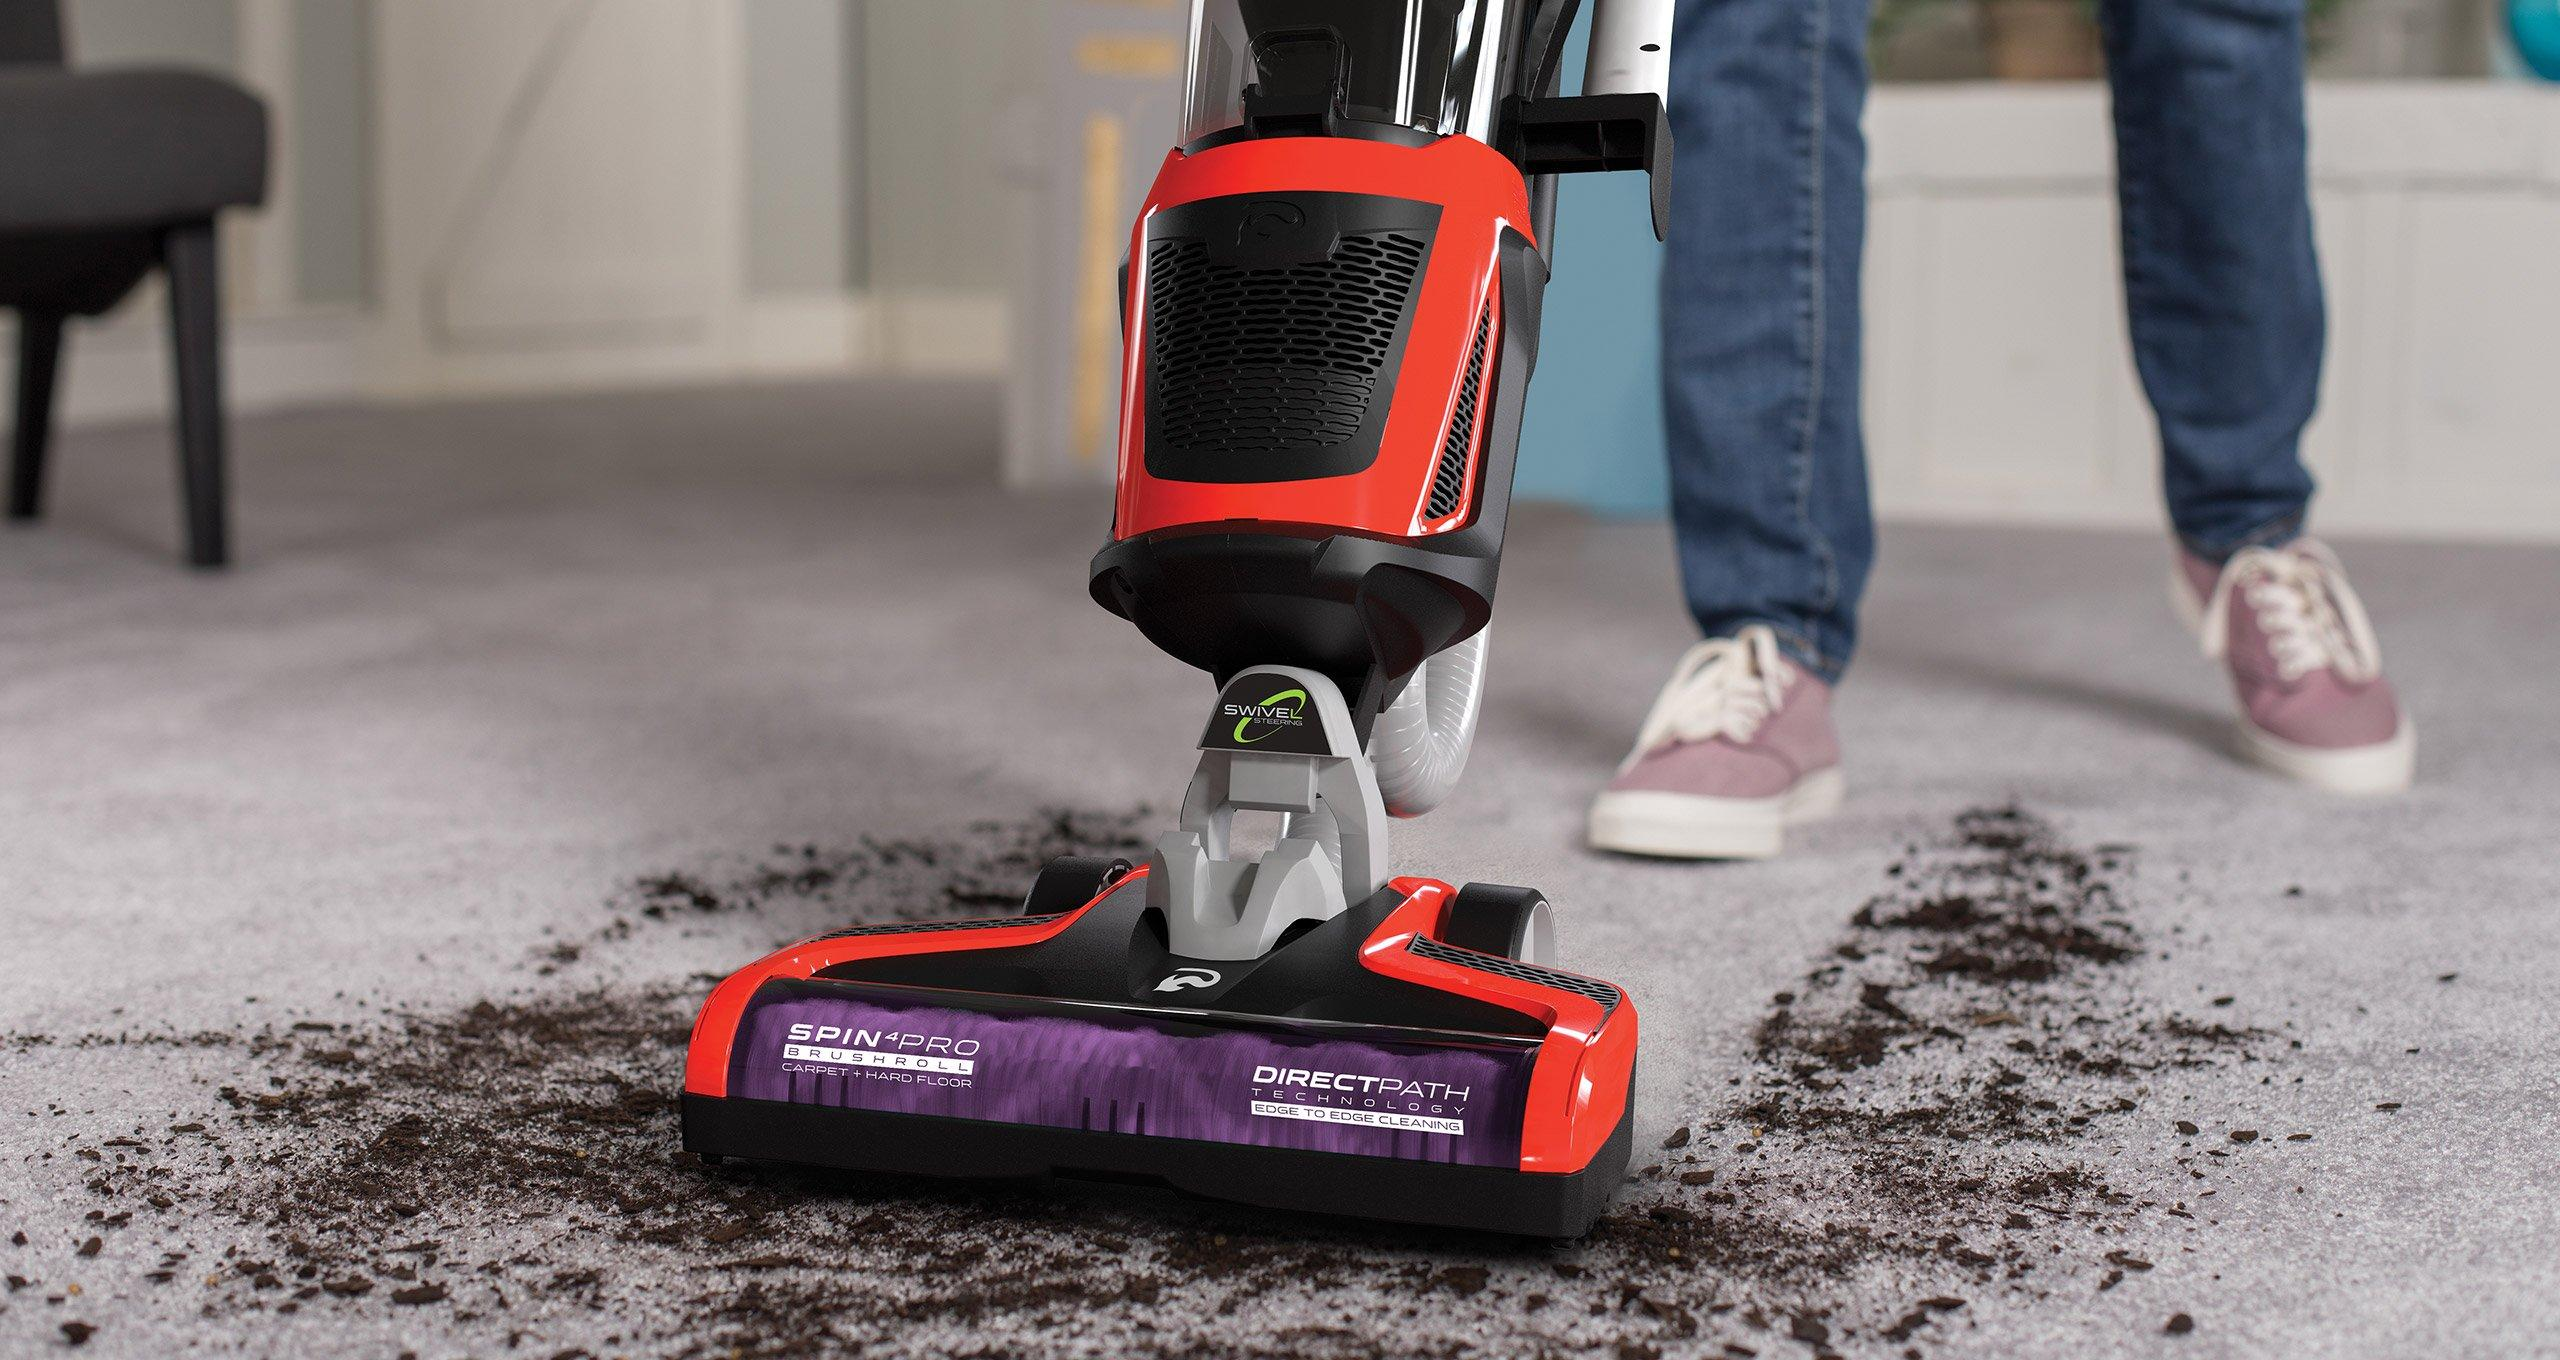 Dirt-Devil-Razor-Pet-Upright-Vacuum-with-Turbo-Tool-Damaged-Box-UD70355BDM thumbnail 2